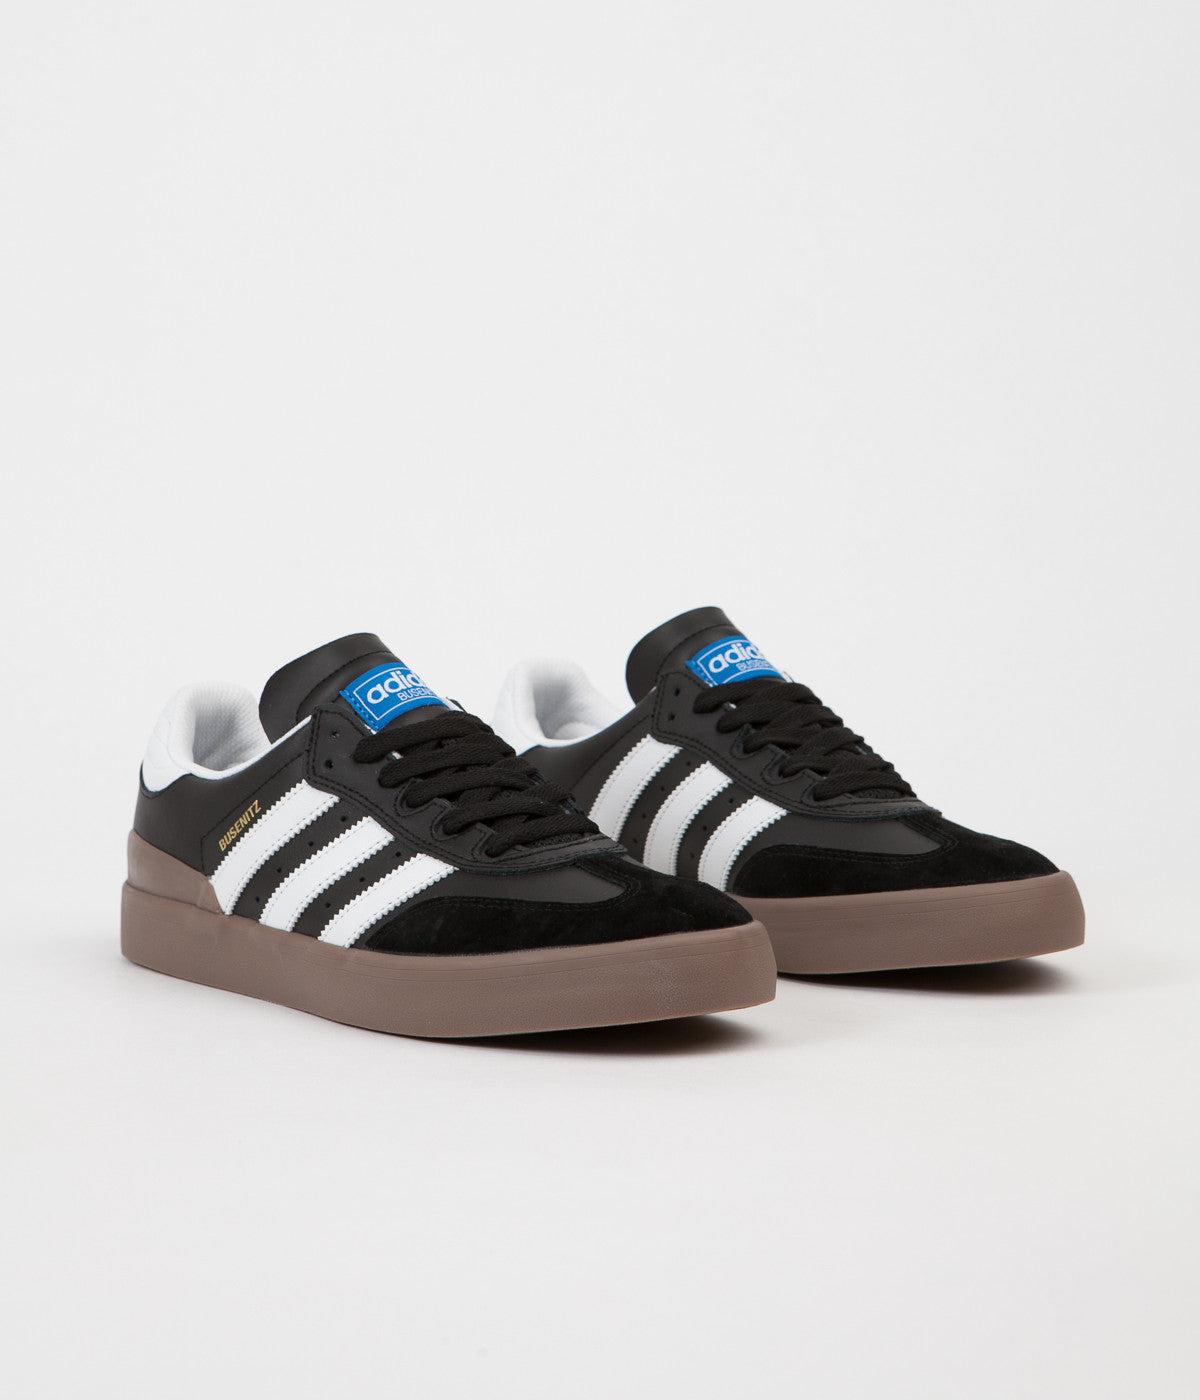 aca97aa1175 ... Adidas Busenitz Vulc RX Shoes - Core Black   White   Gum5 ...